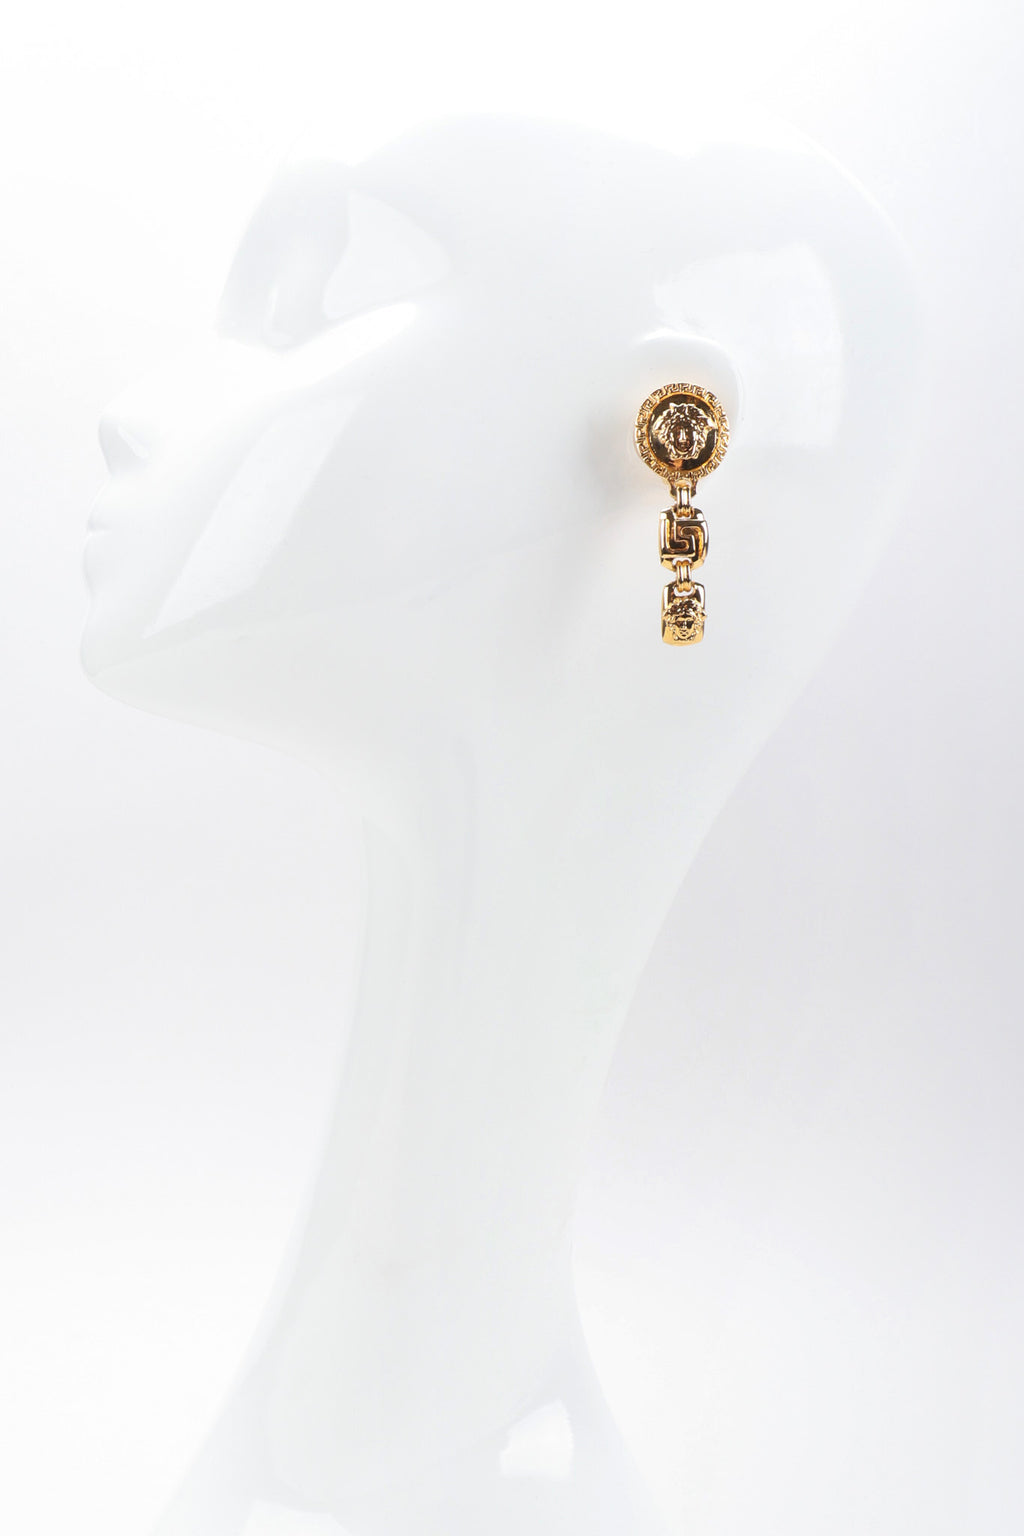 cde62e08 Recess Los Angeles Vintage Gianni Versace Gold Greek Key Medusa Drop  Earrings